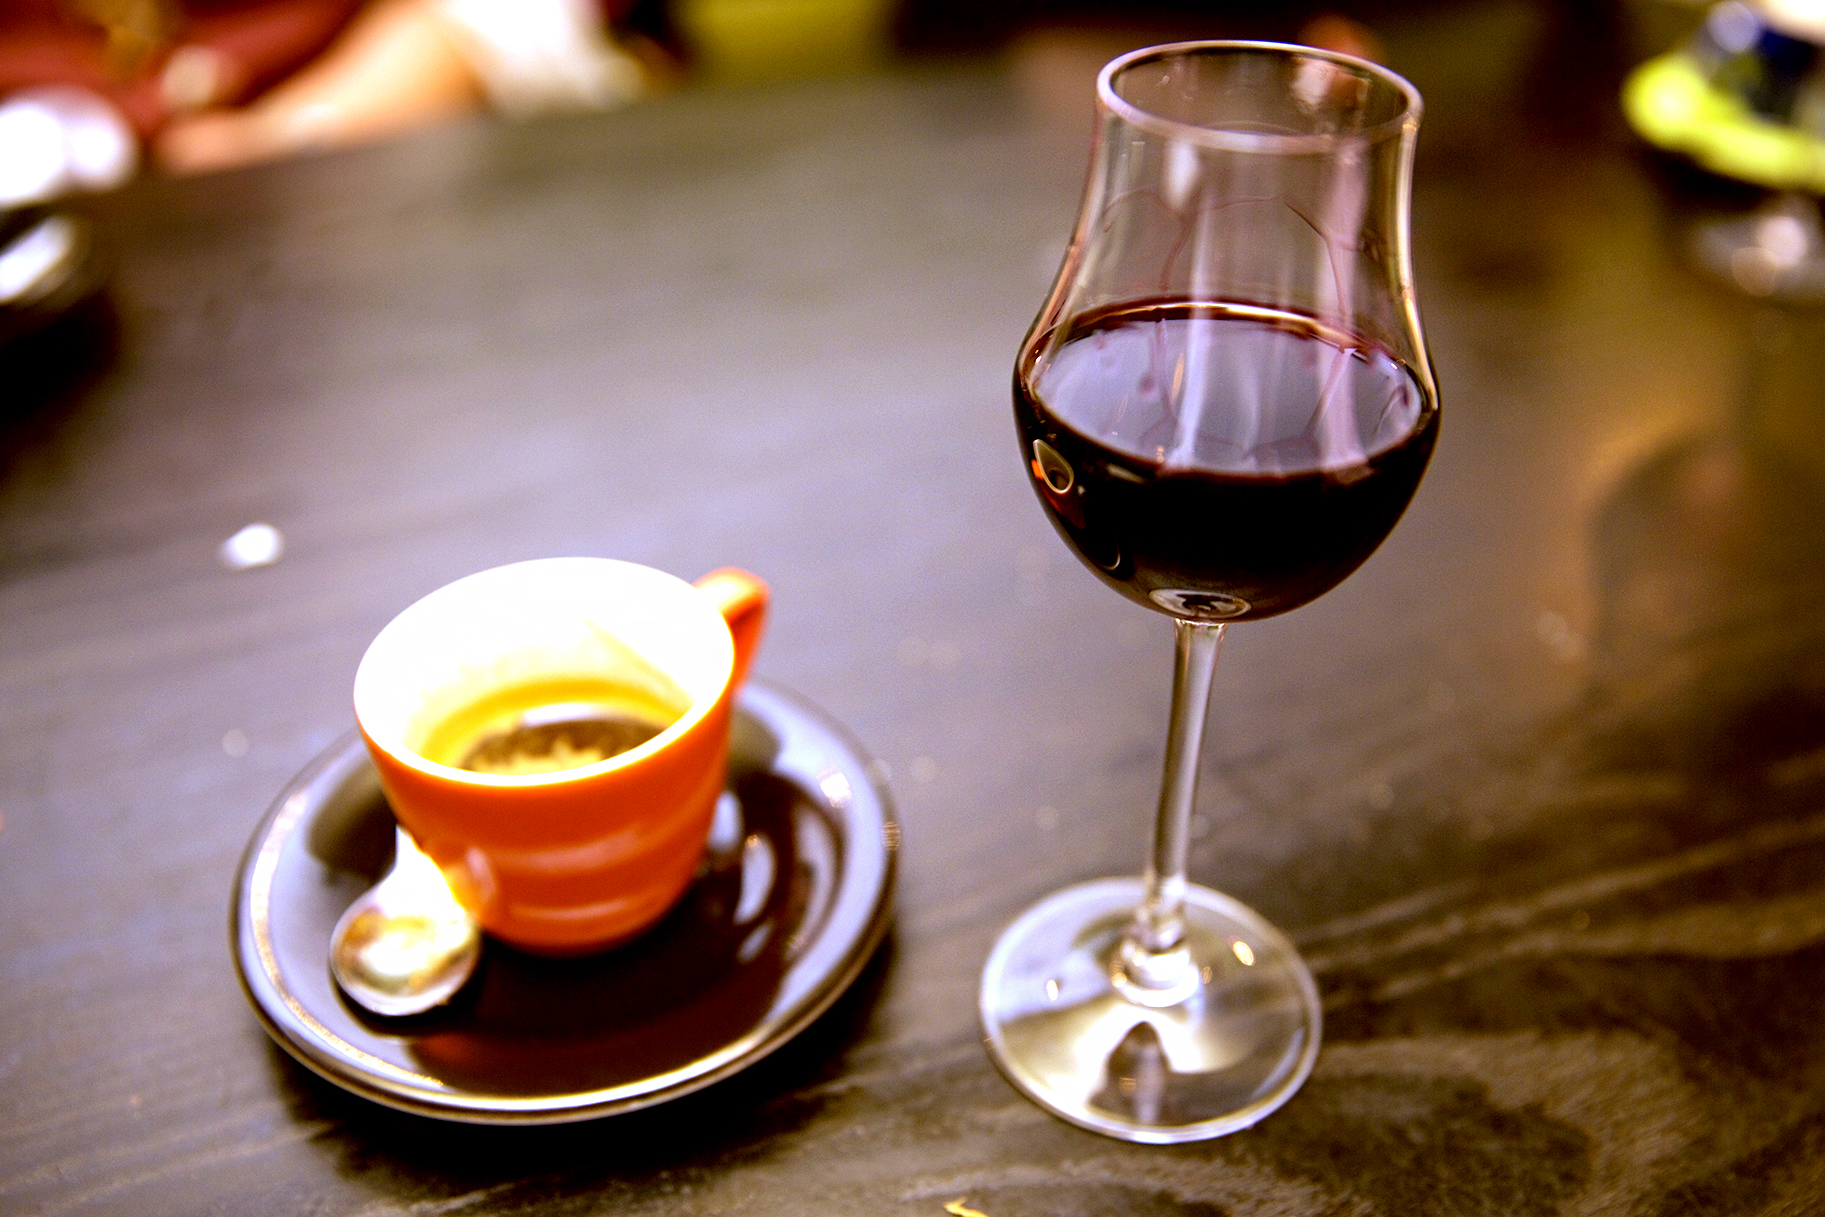 Ready for wine-infused coffee?